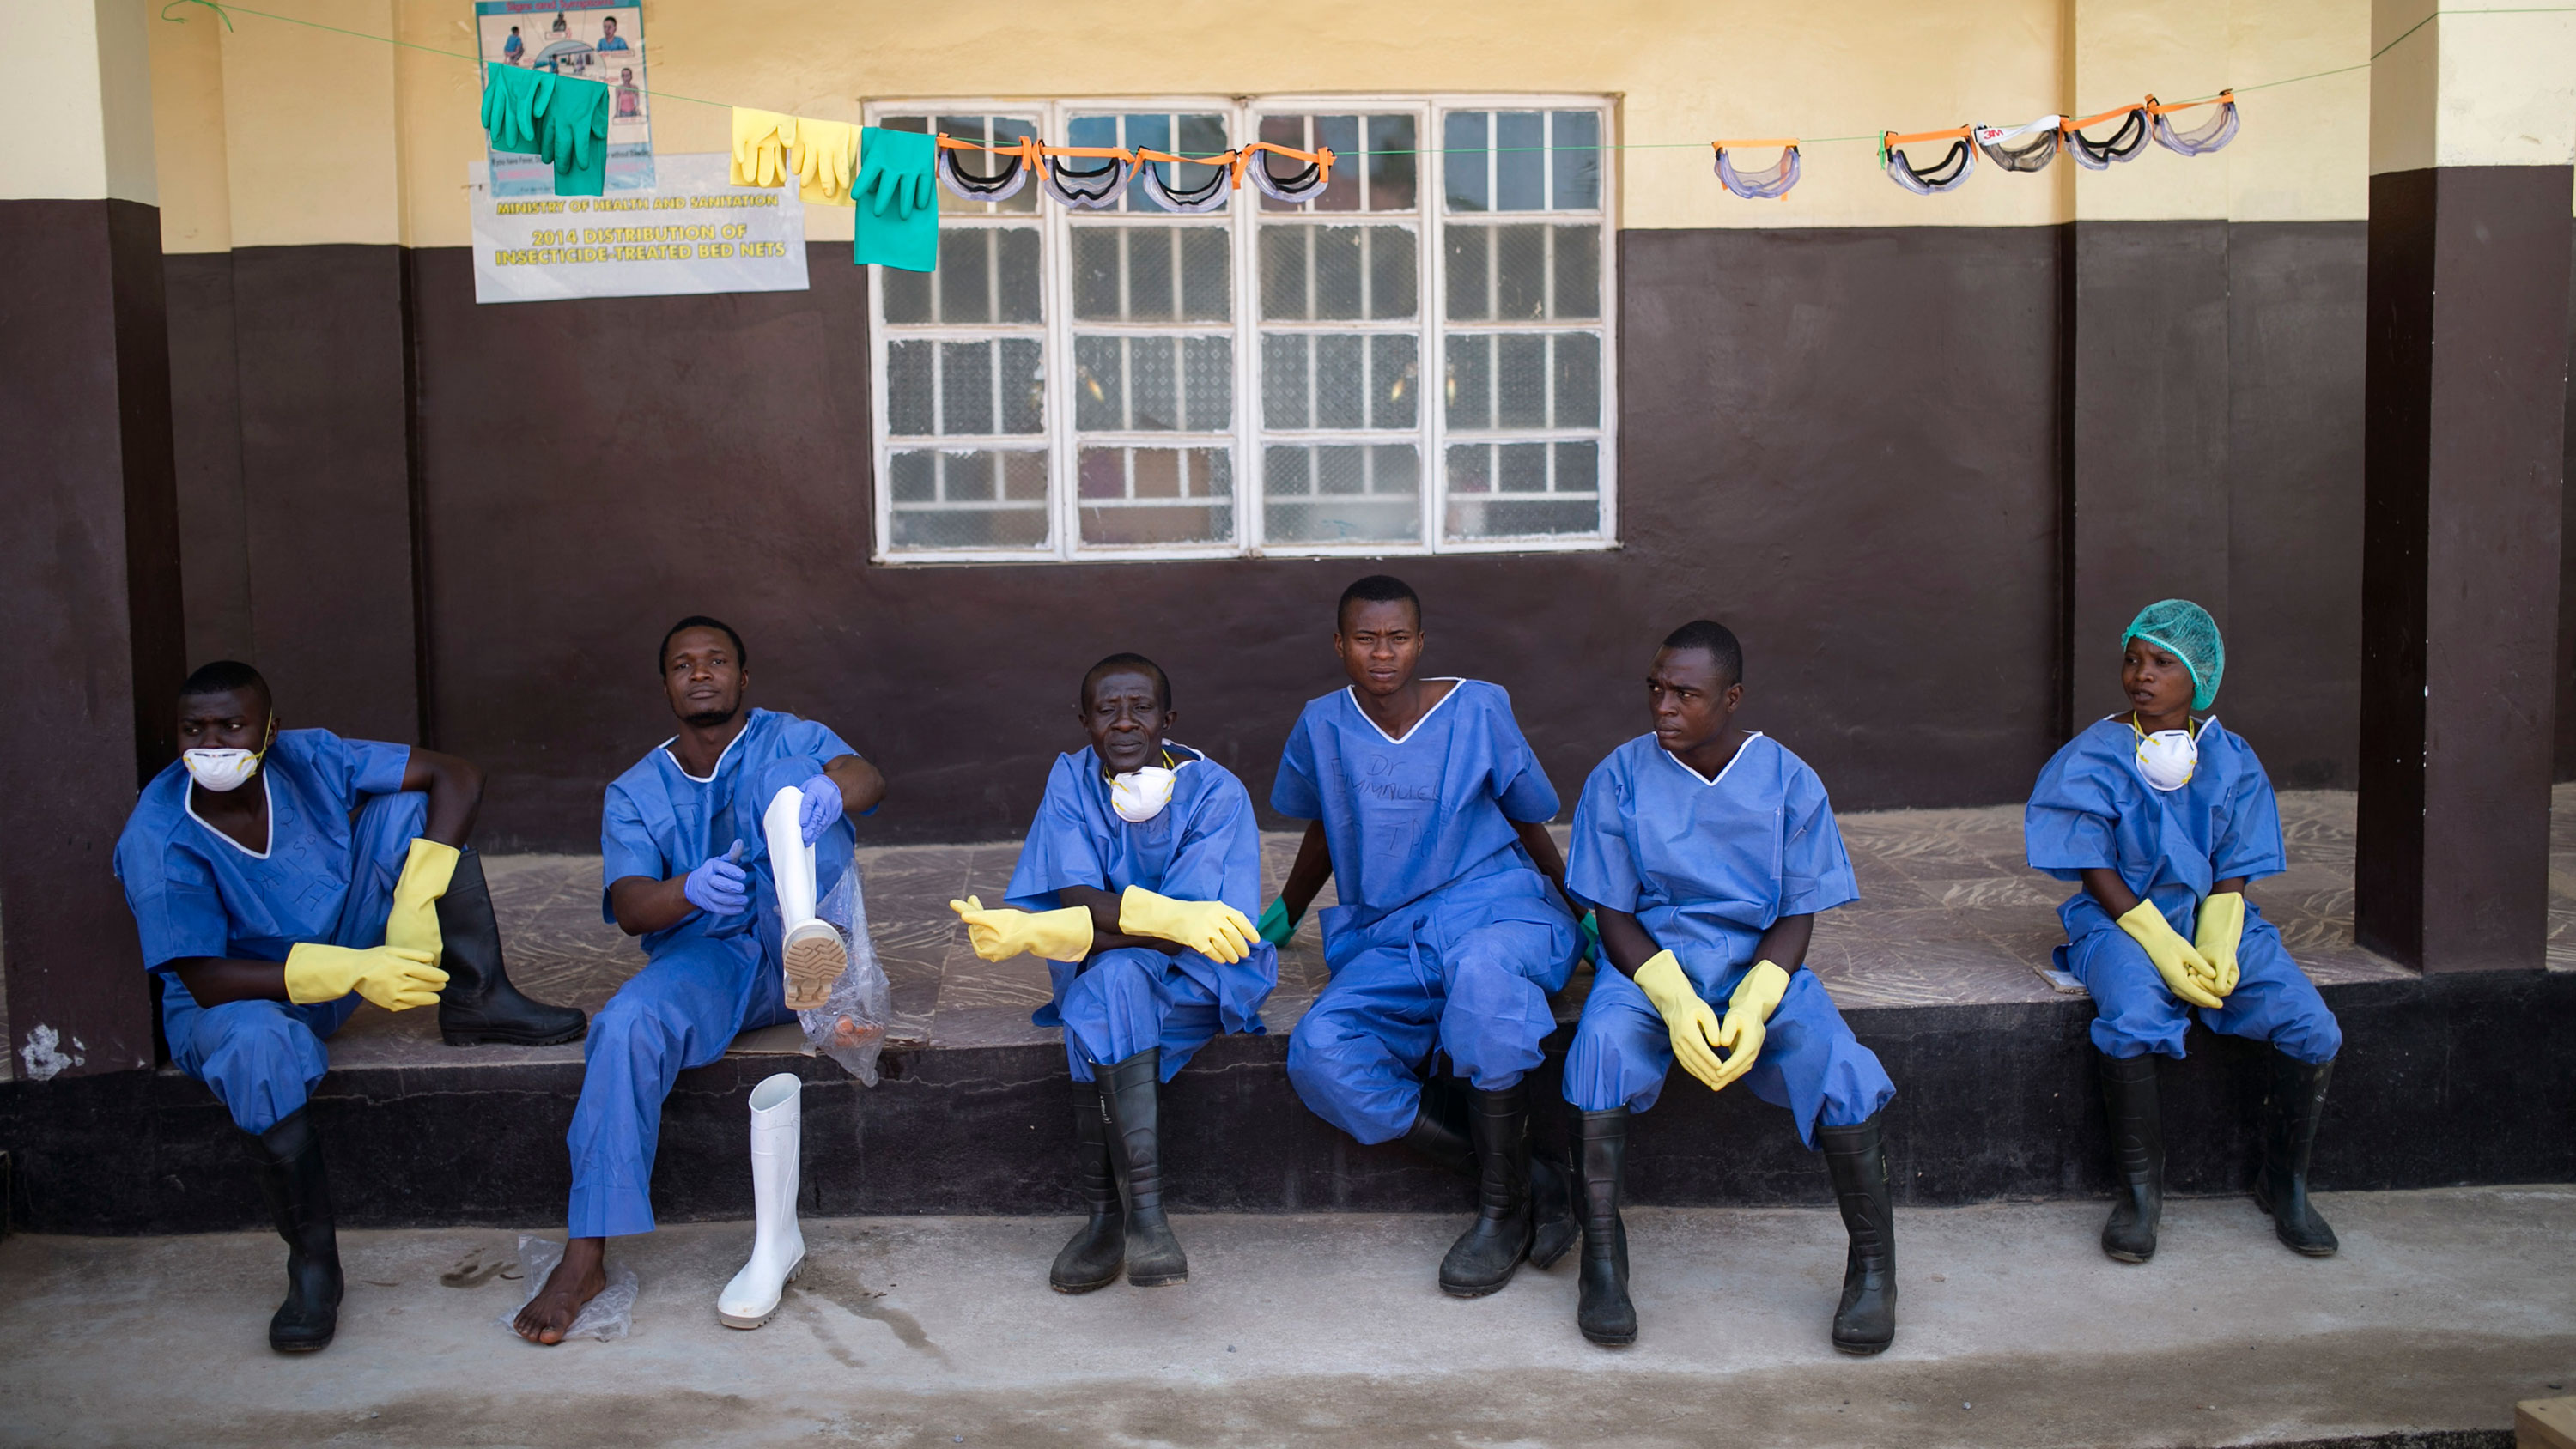 The photo shows six workers on a bench. They are wearing blue scrubs, black boots, and yellow gloves.